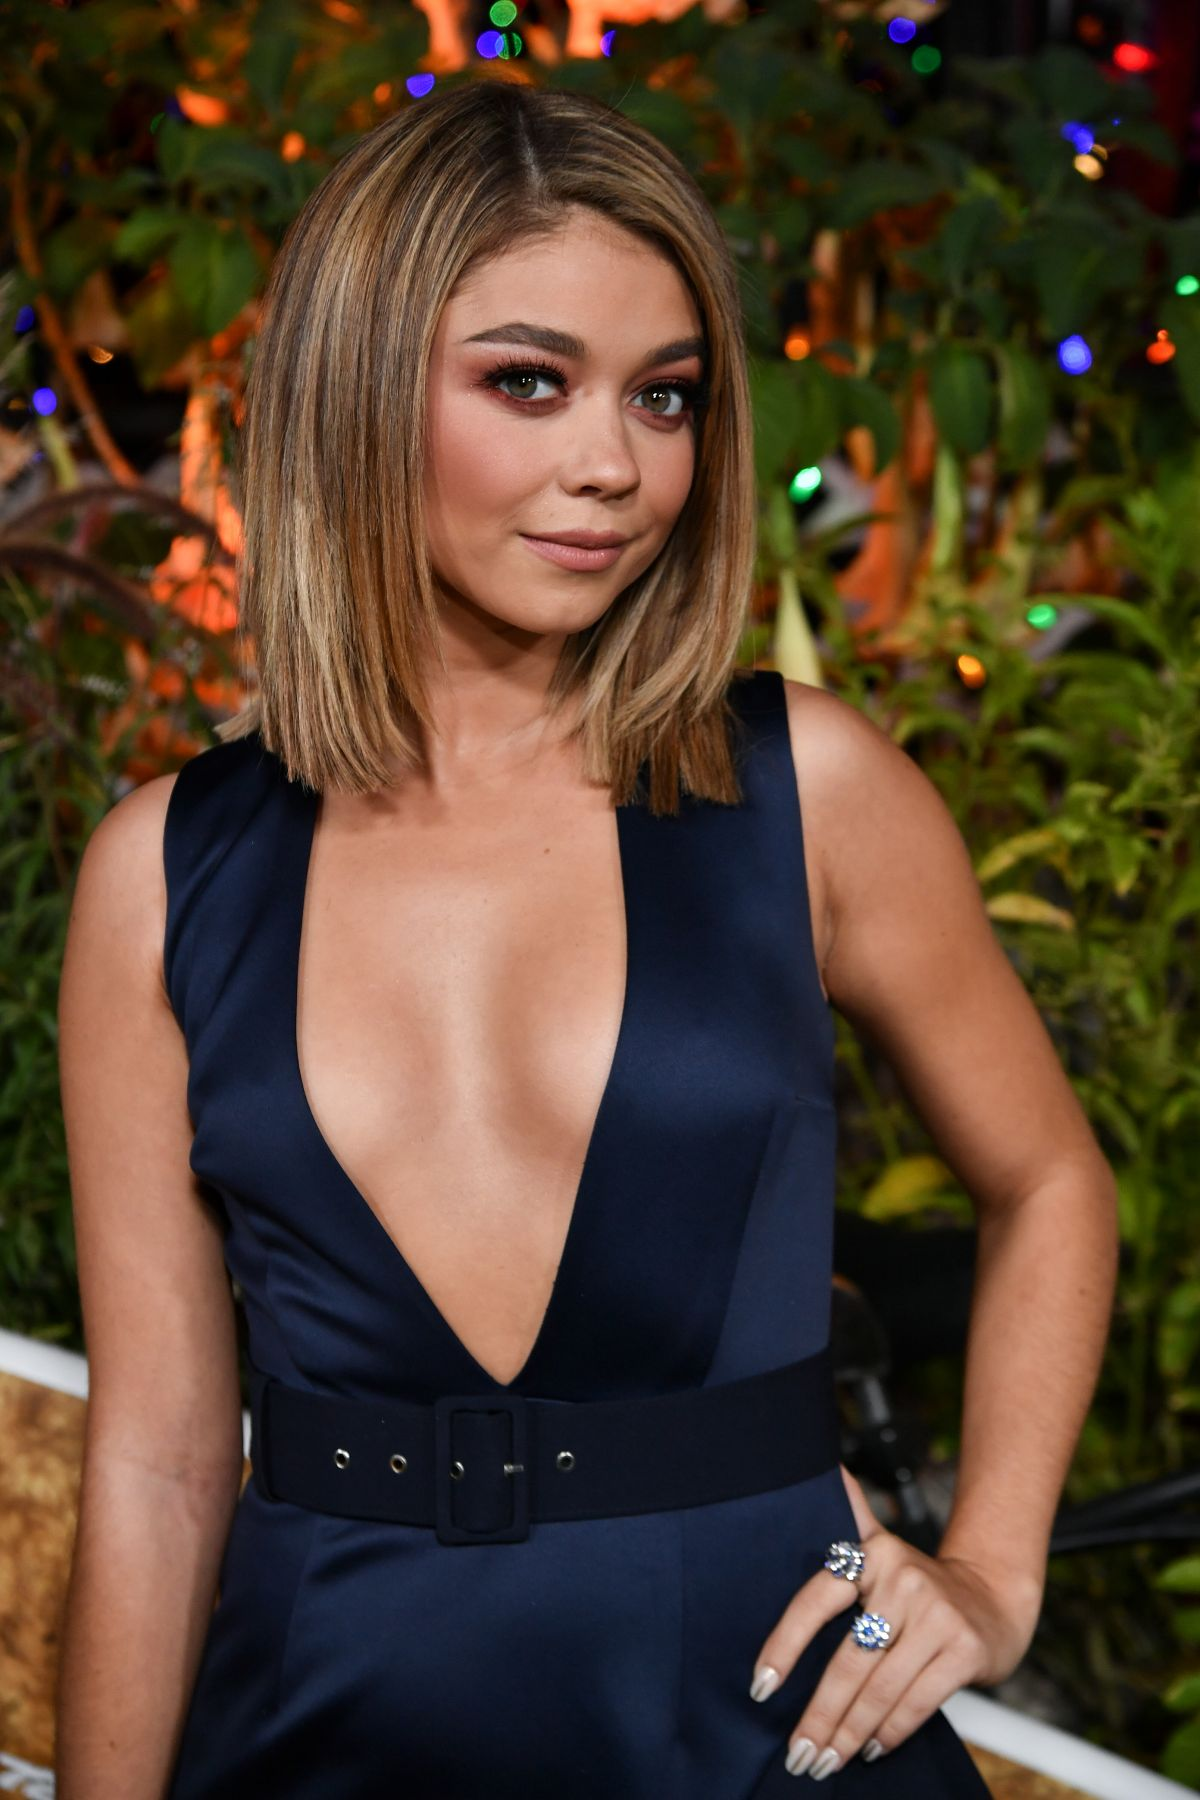 Pics Sarah Hyland nudes (59 foto and video), Topless, Cleavage, Feet, cleavage 2019